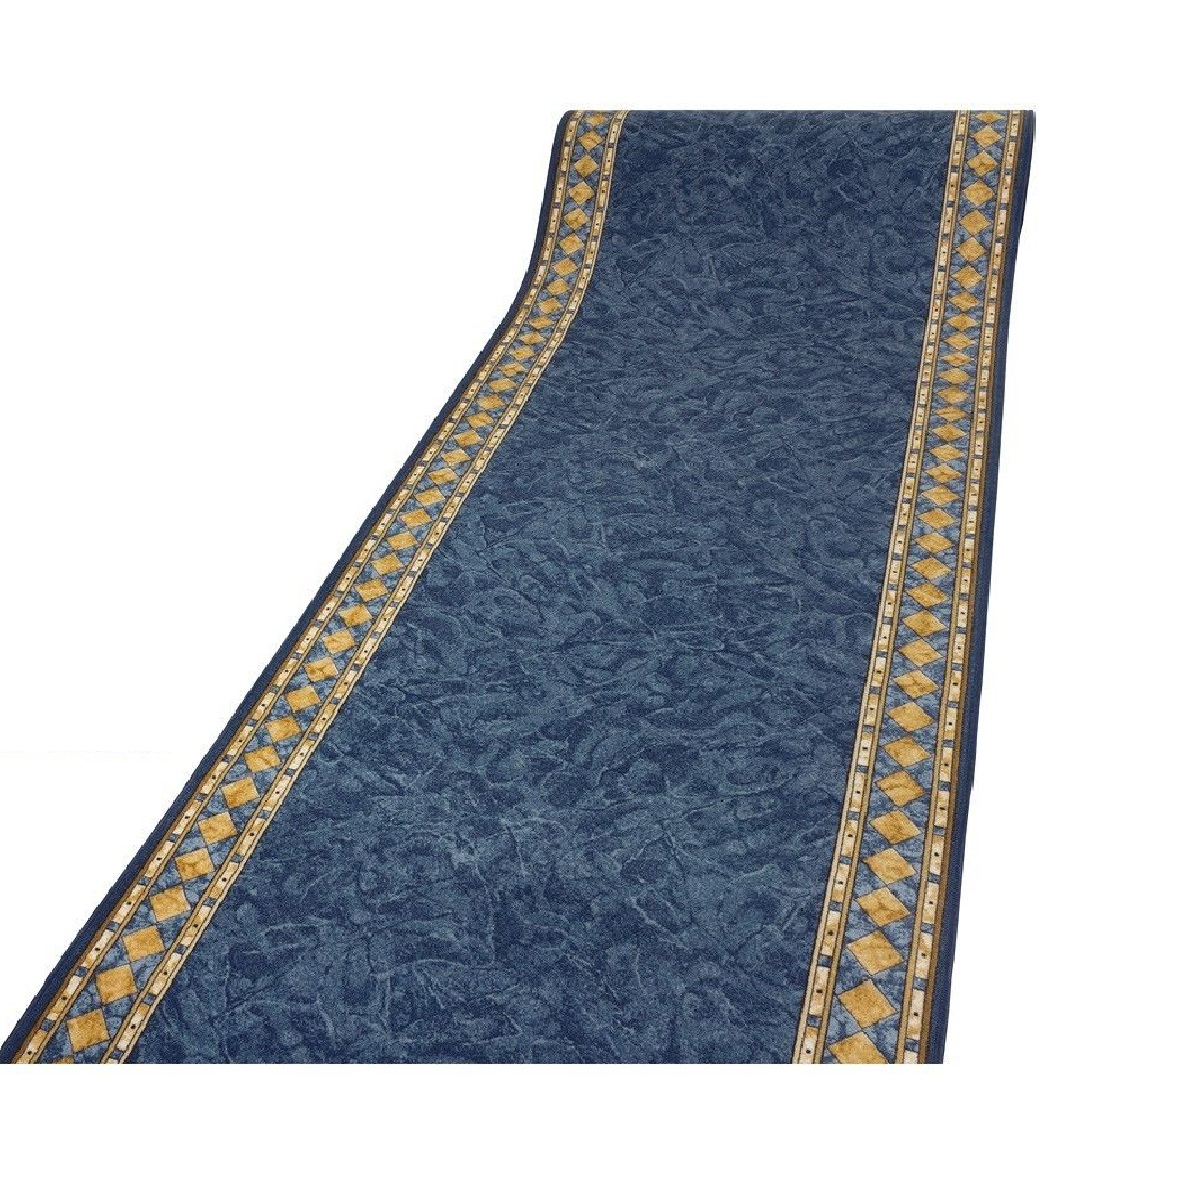 Details About Cheops Blue 64 Sizes Very Long Narrow Big Hallway Hall Runner Carpet Mat Rugs